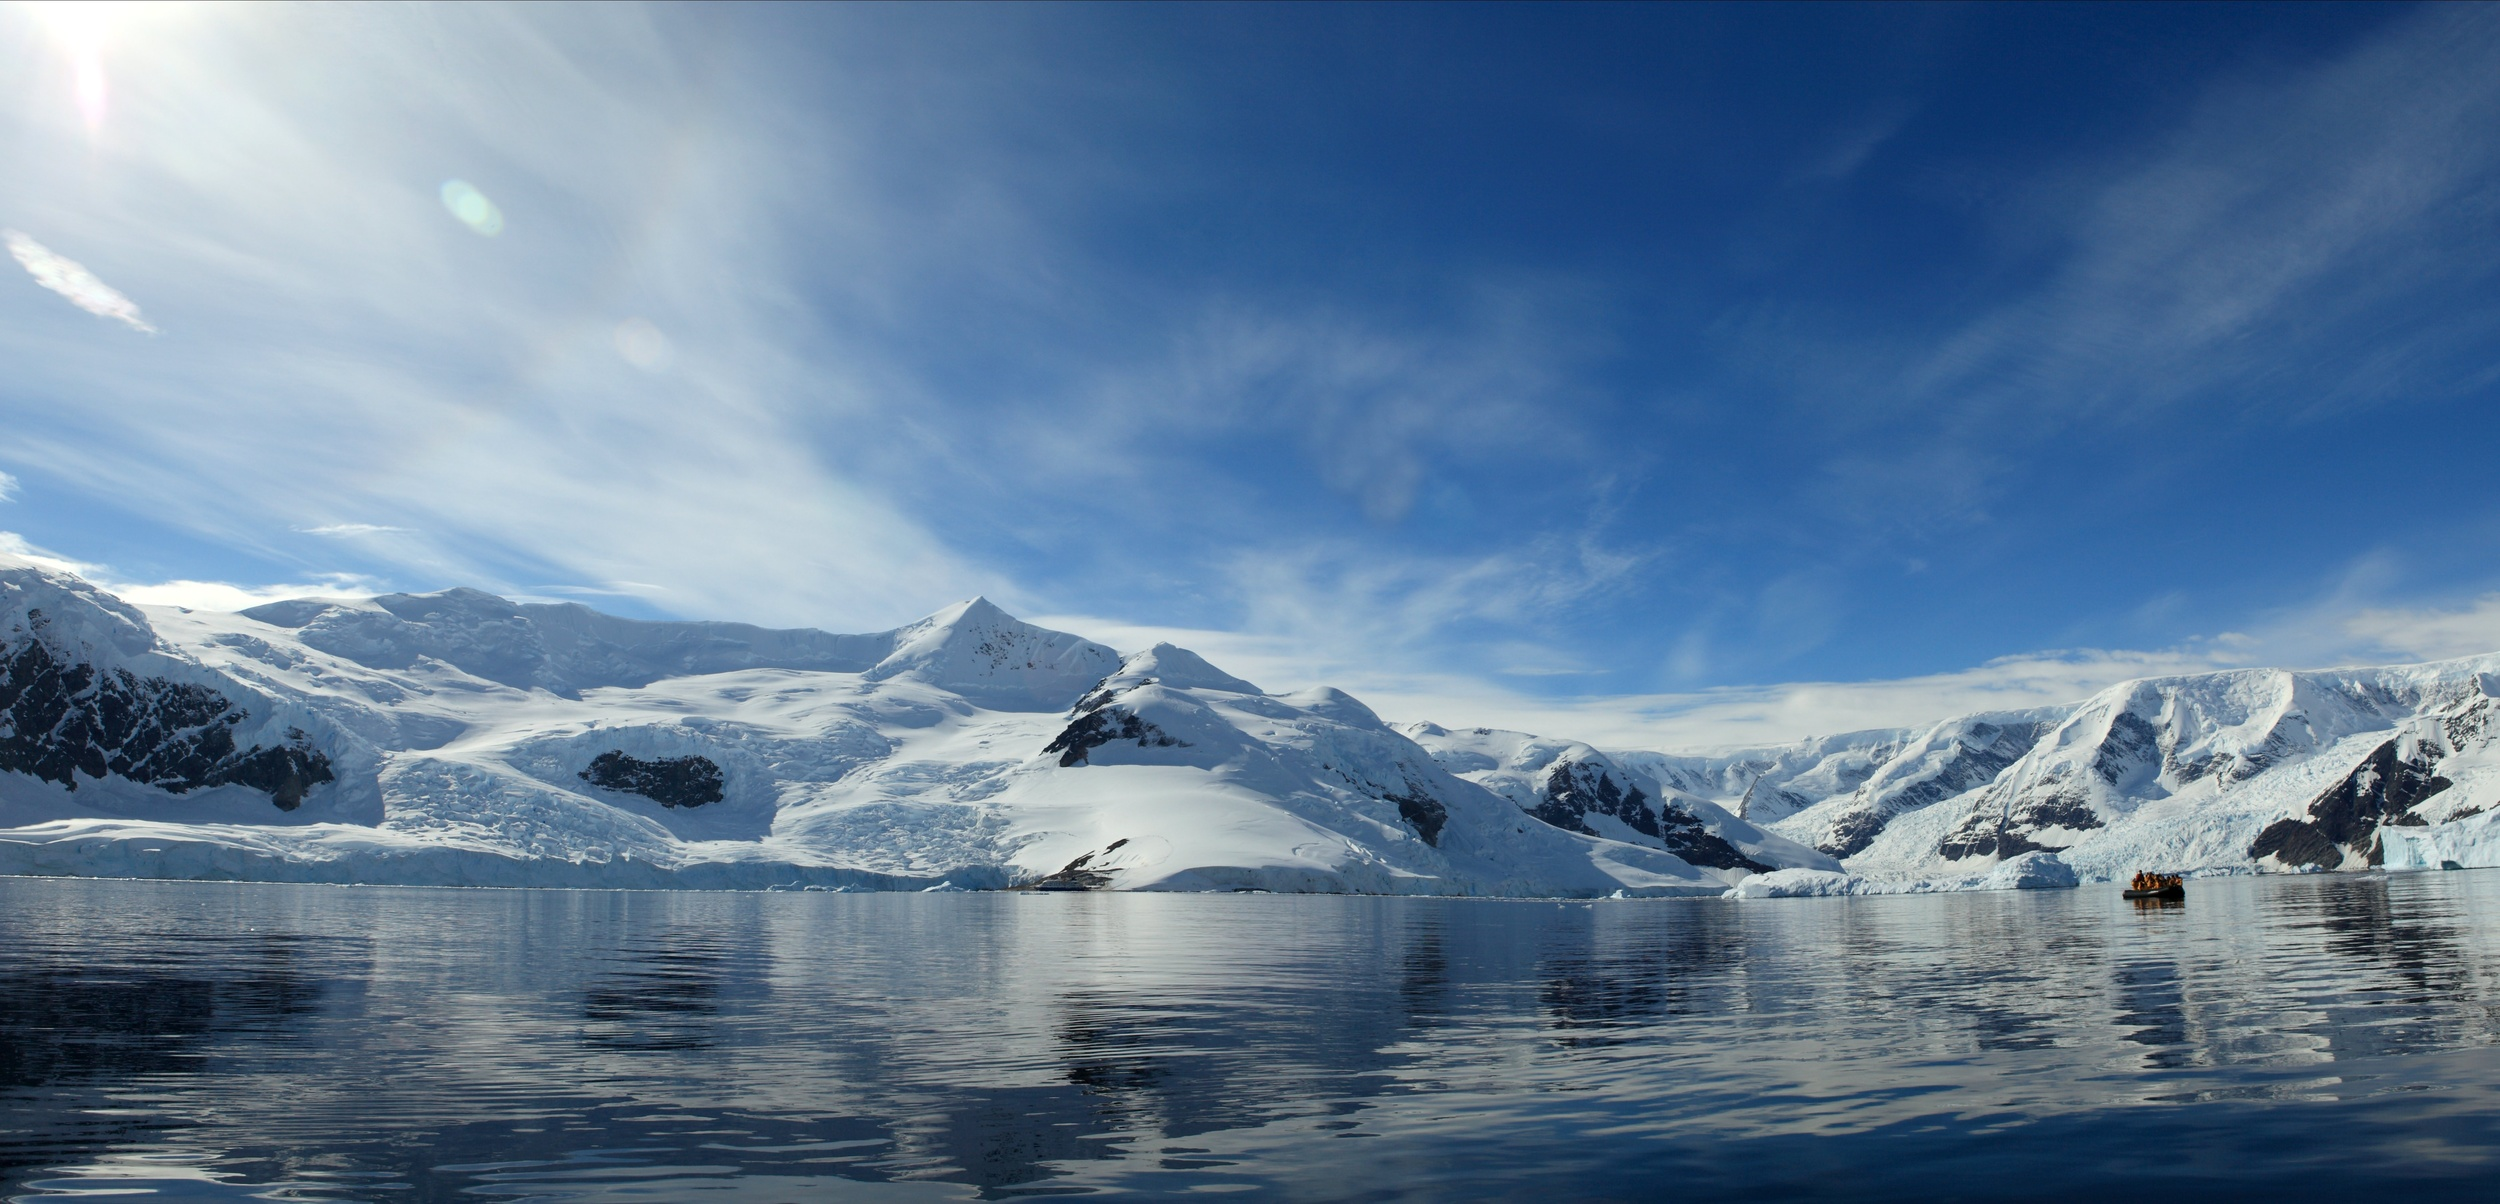 Licensed Adobe stock photo. Sorry, but I haven't made it down to Antarctica yet.